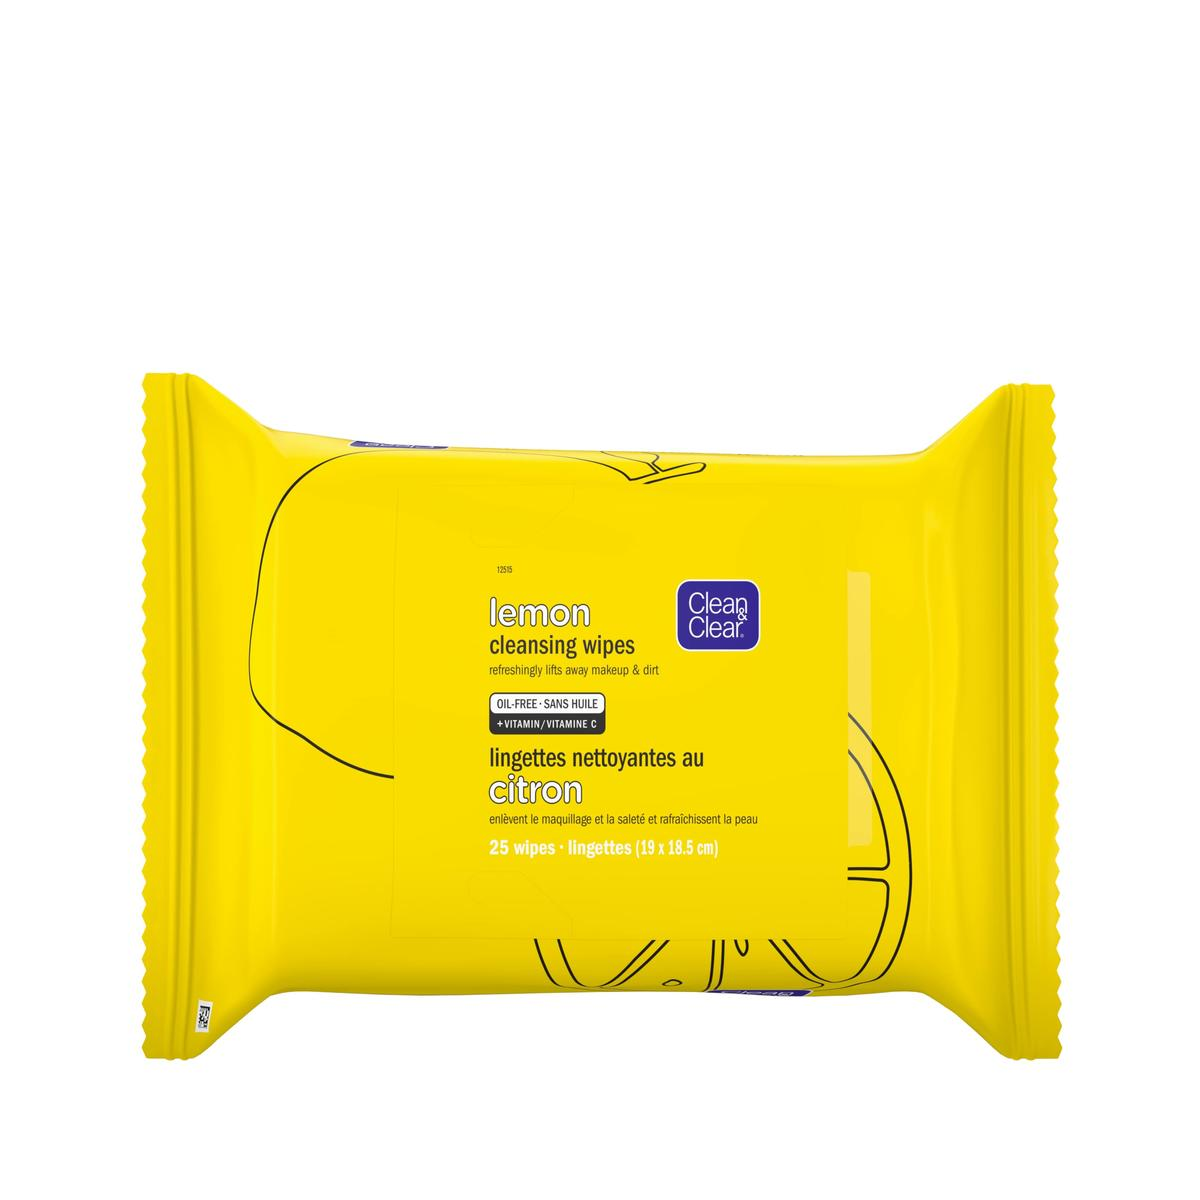 Clean and Clear lemon cleansing wipes yellow pack